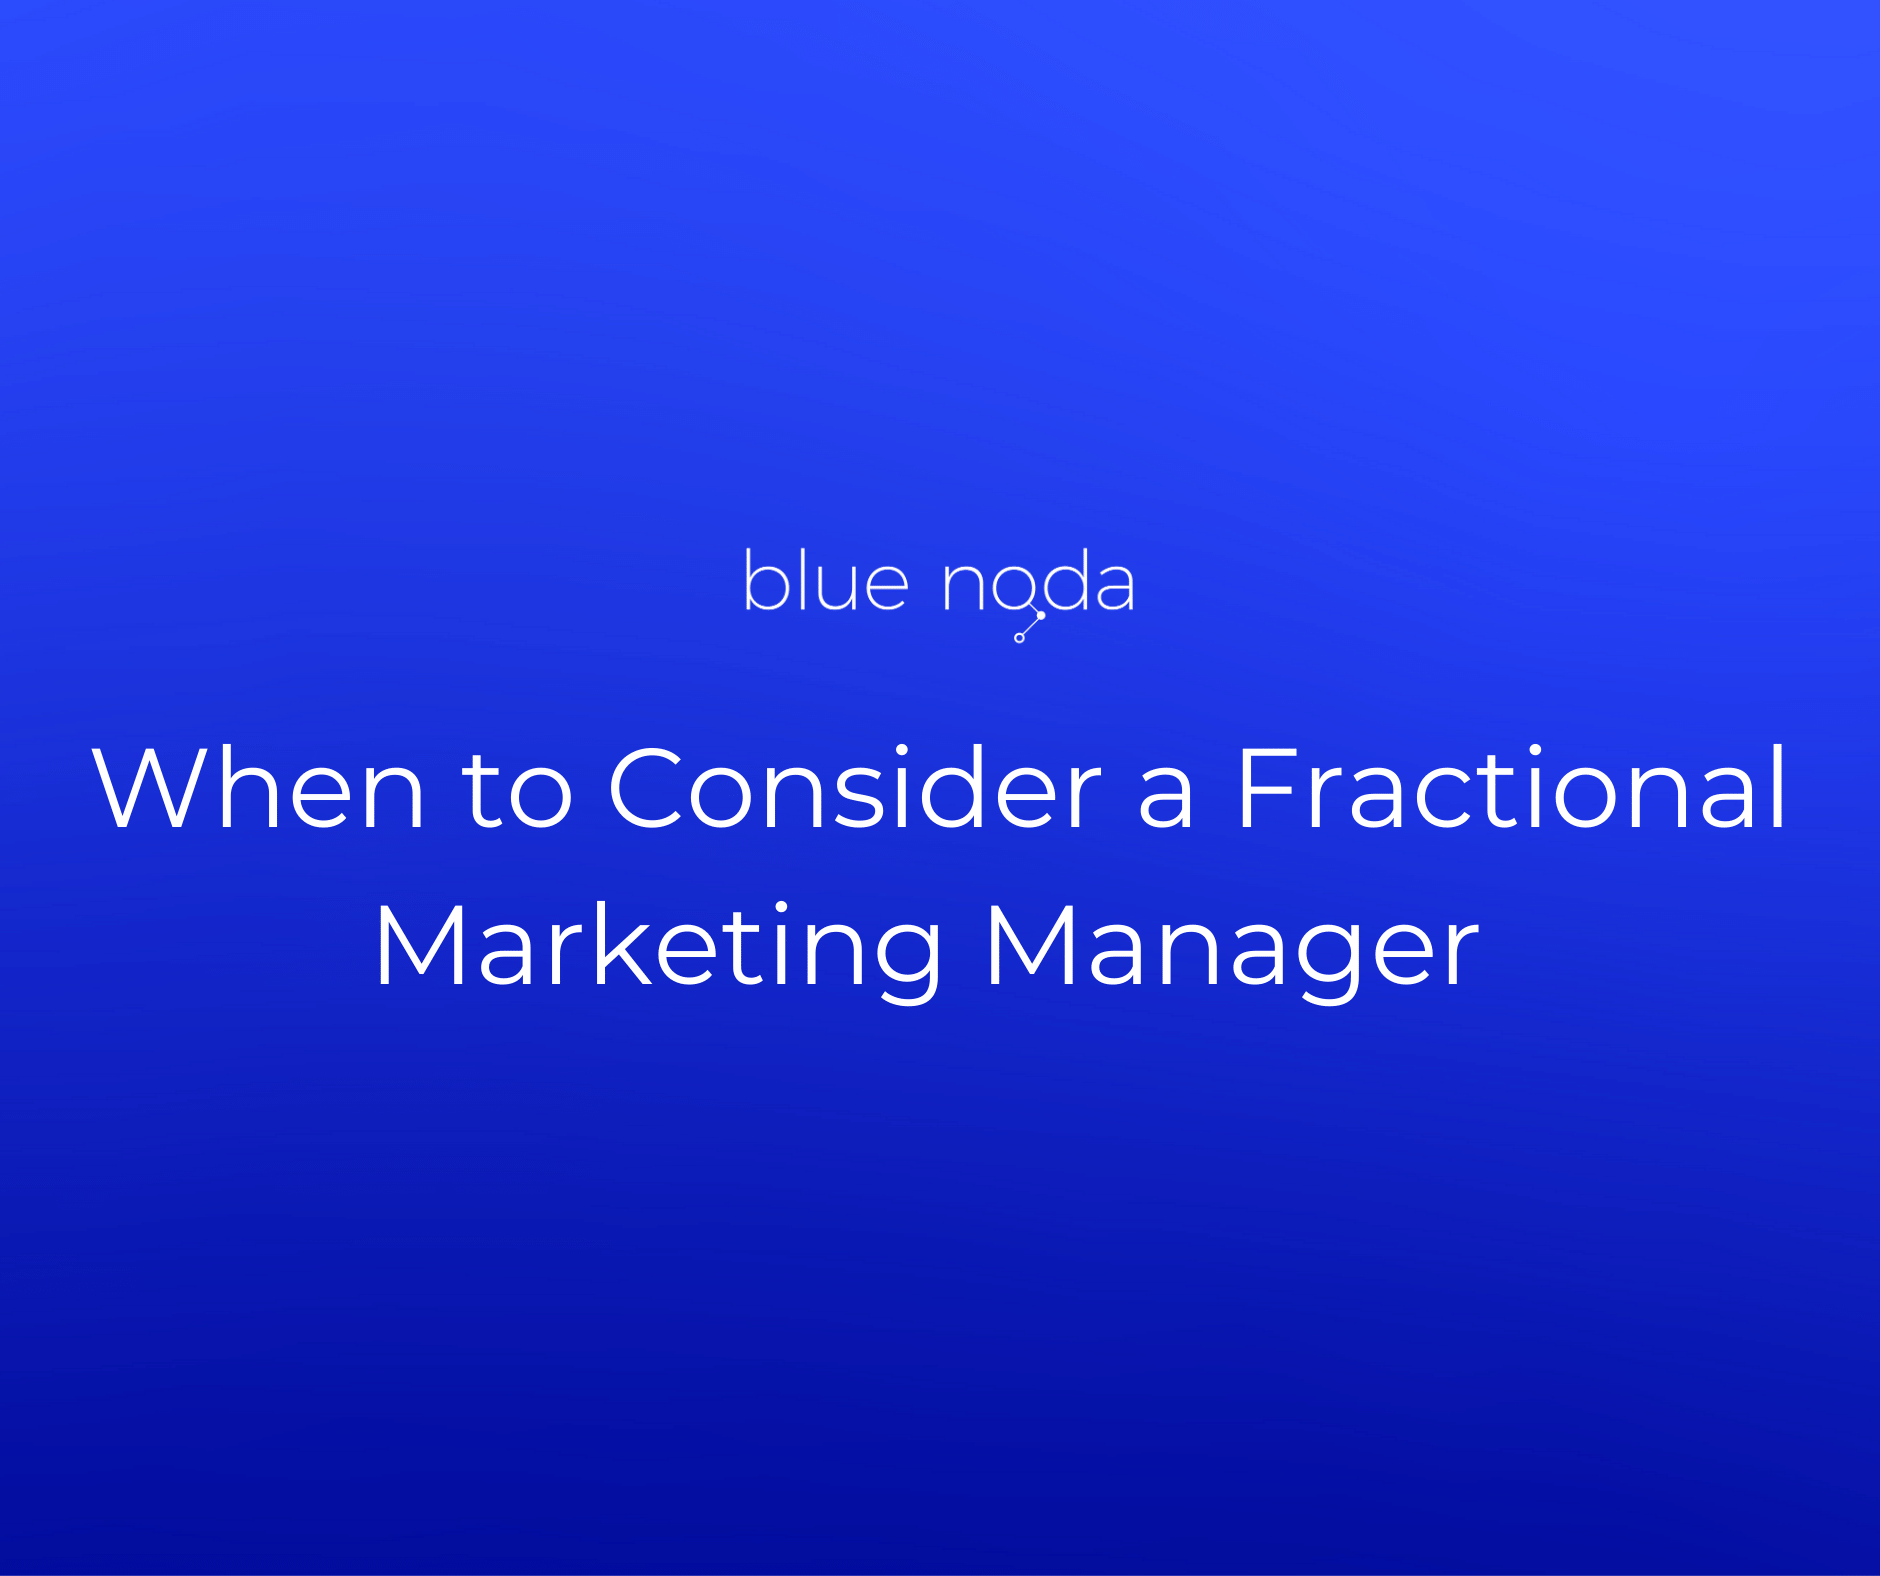 When to Consider a Fractional Marketing Manager - blog